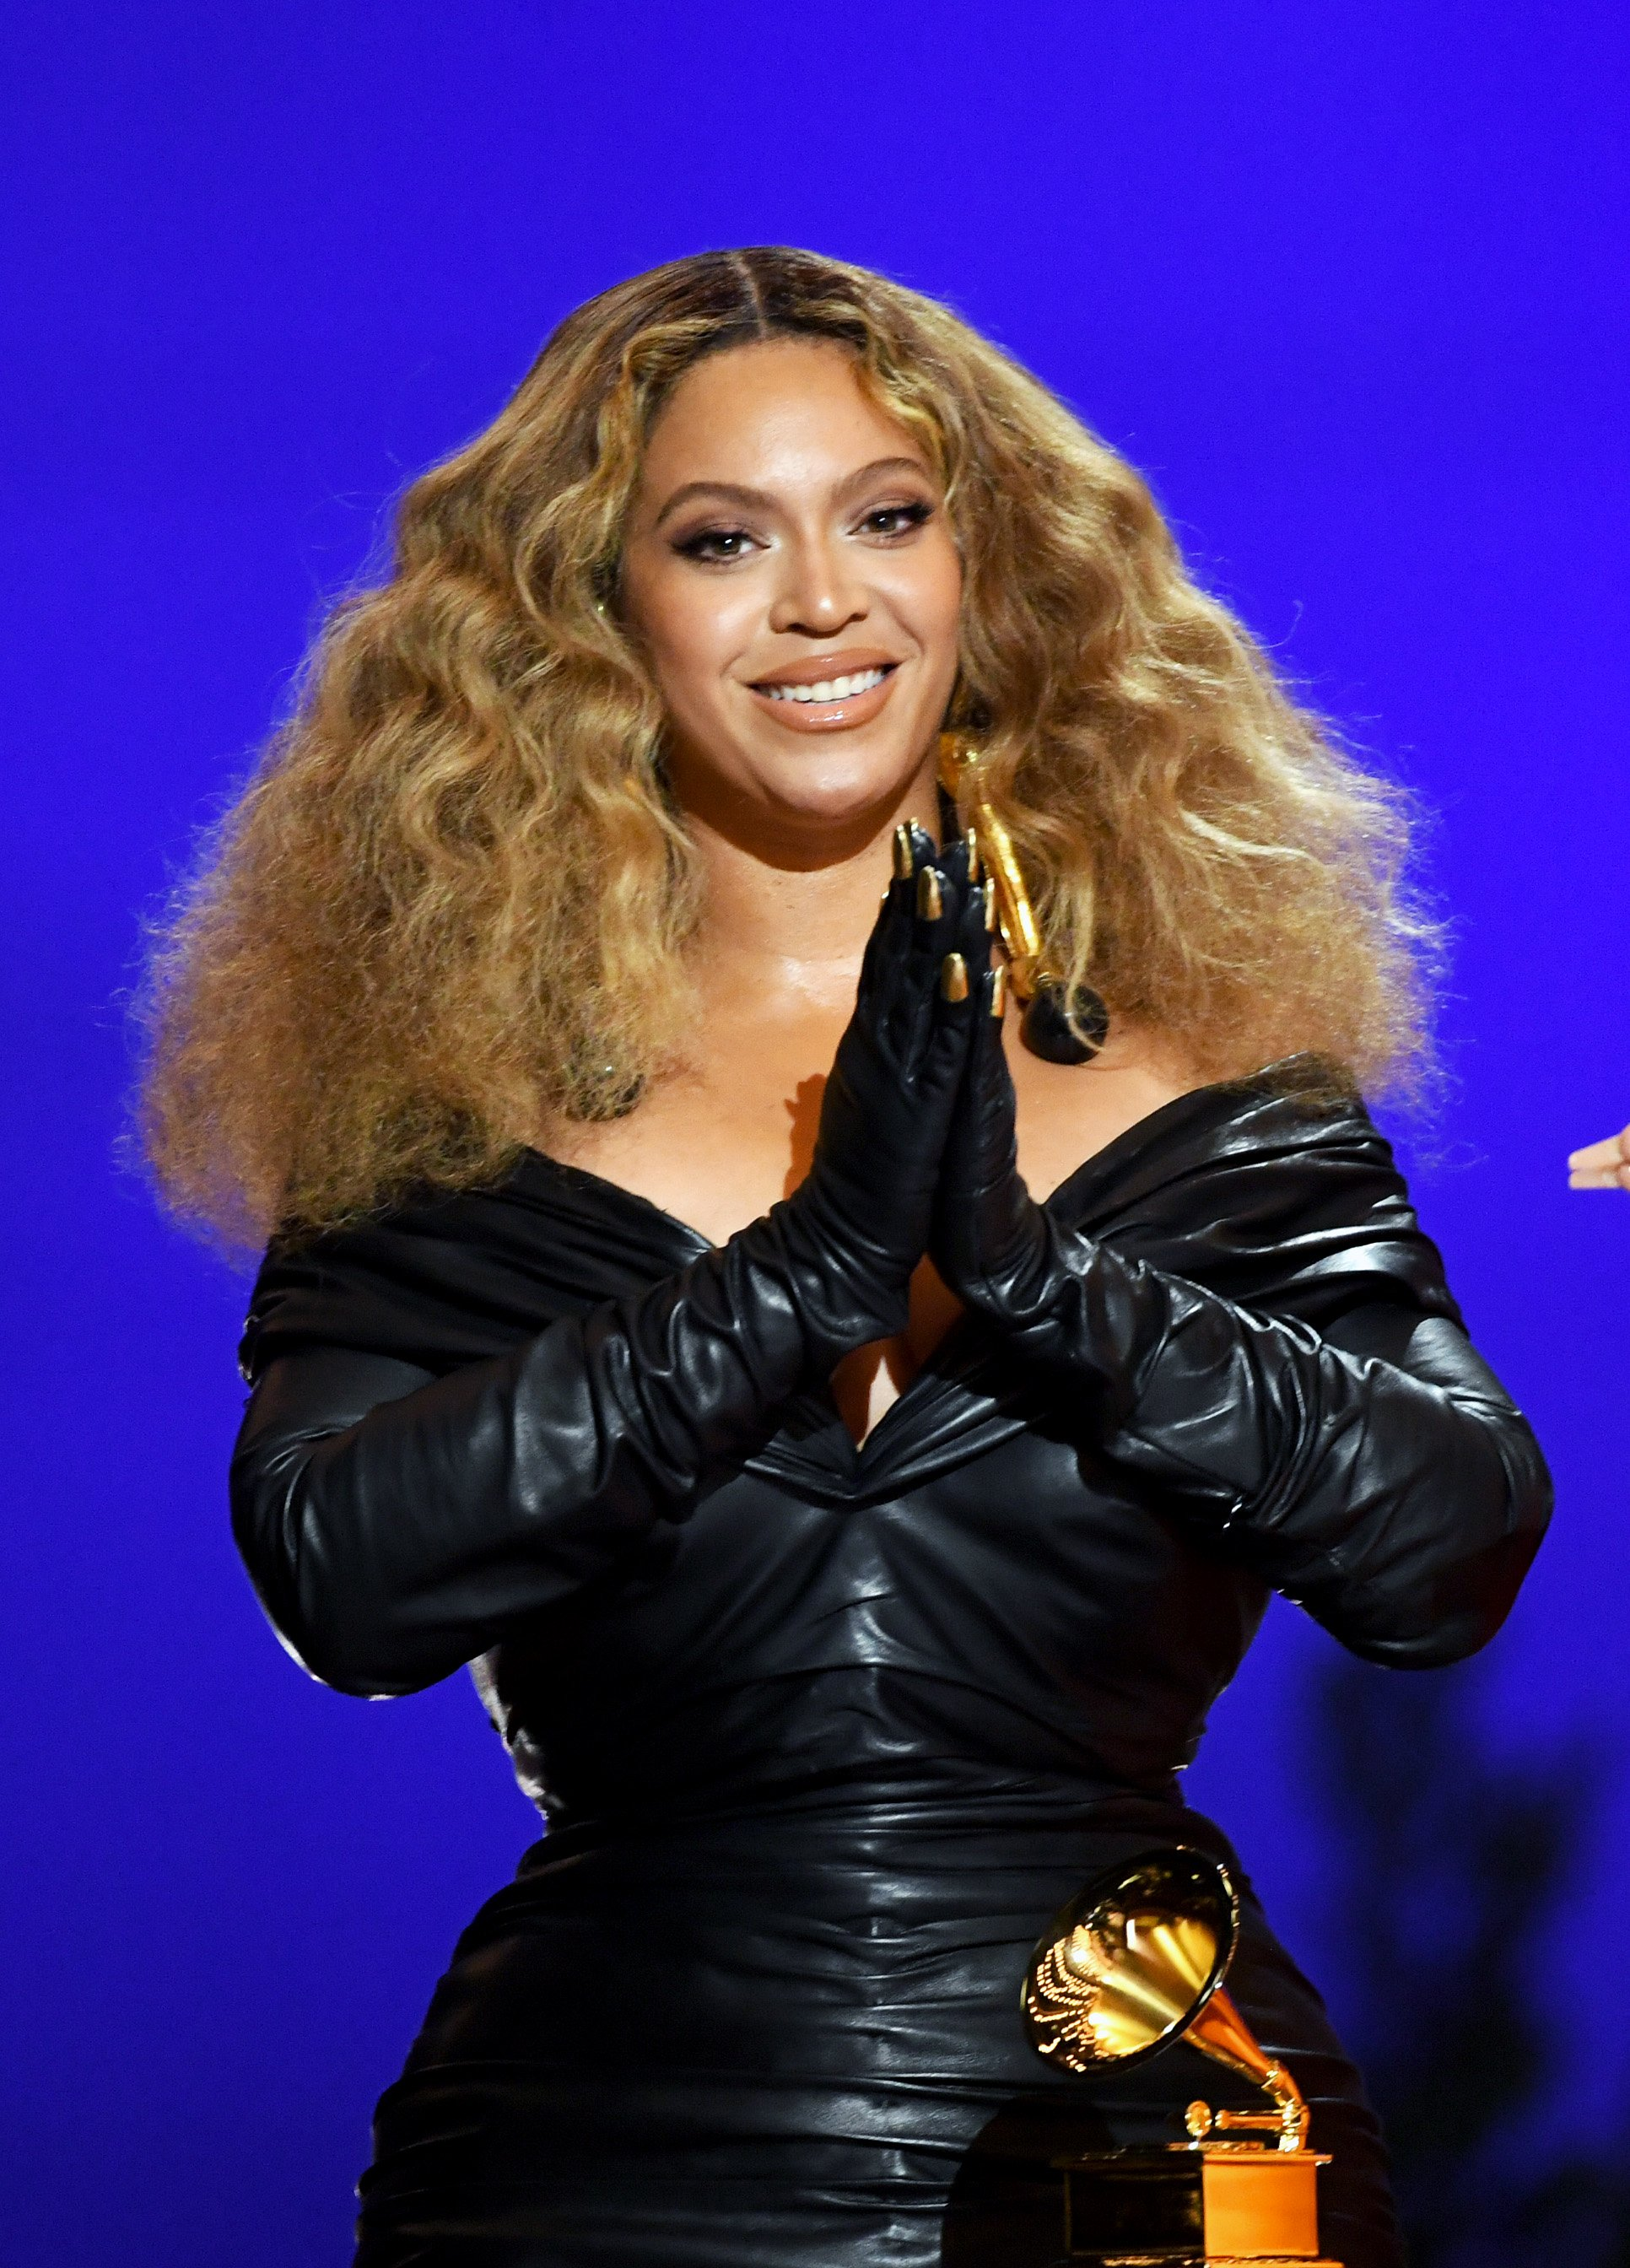 Beyoncé accepts an award at the 63rd Annual Grammy Awards on March 14, 2021 | Photo: Getty Images